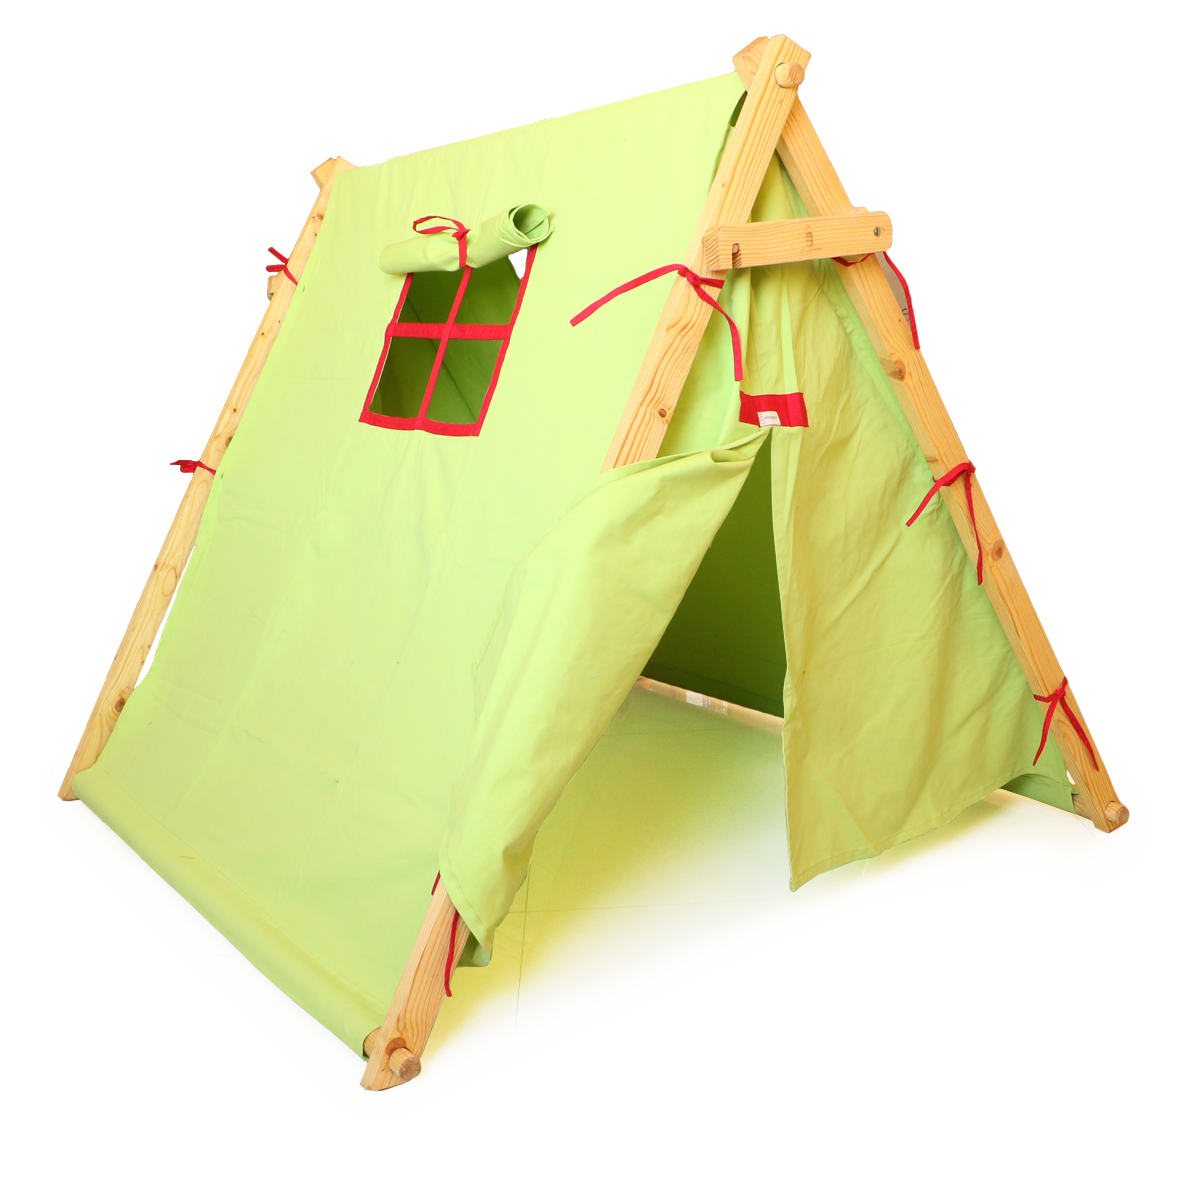 Green Tent PNG Image